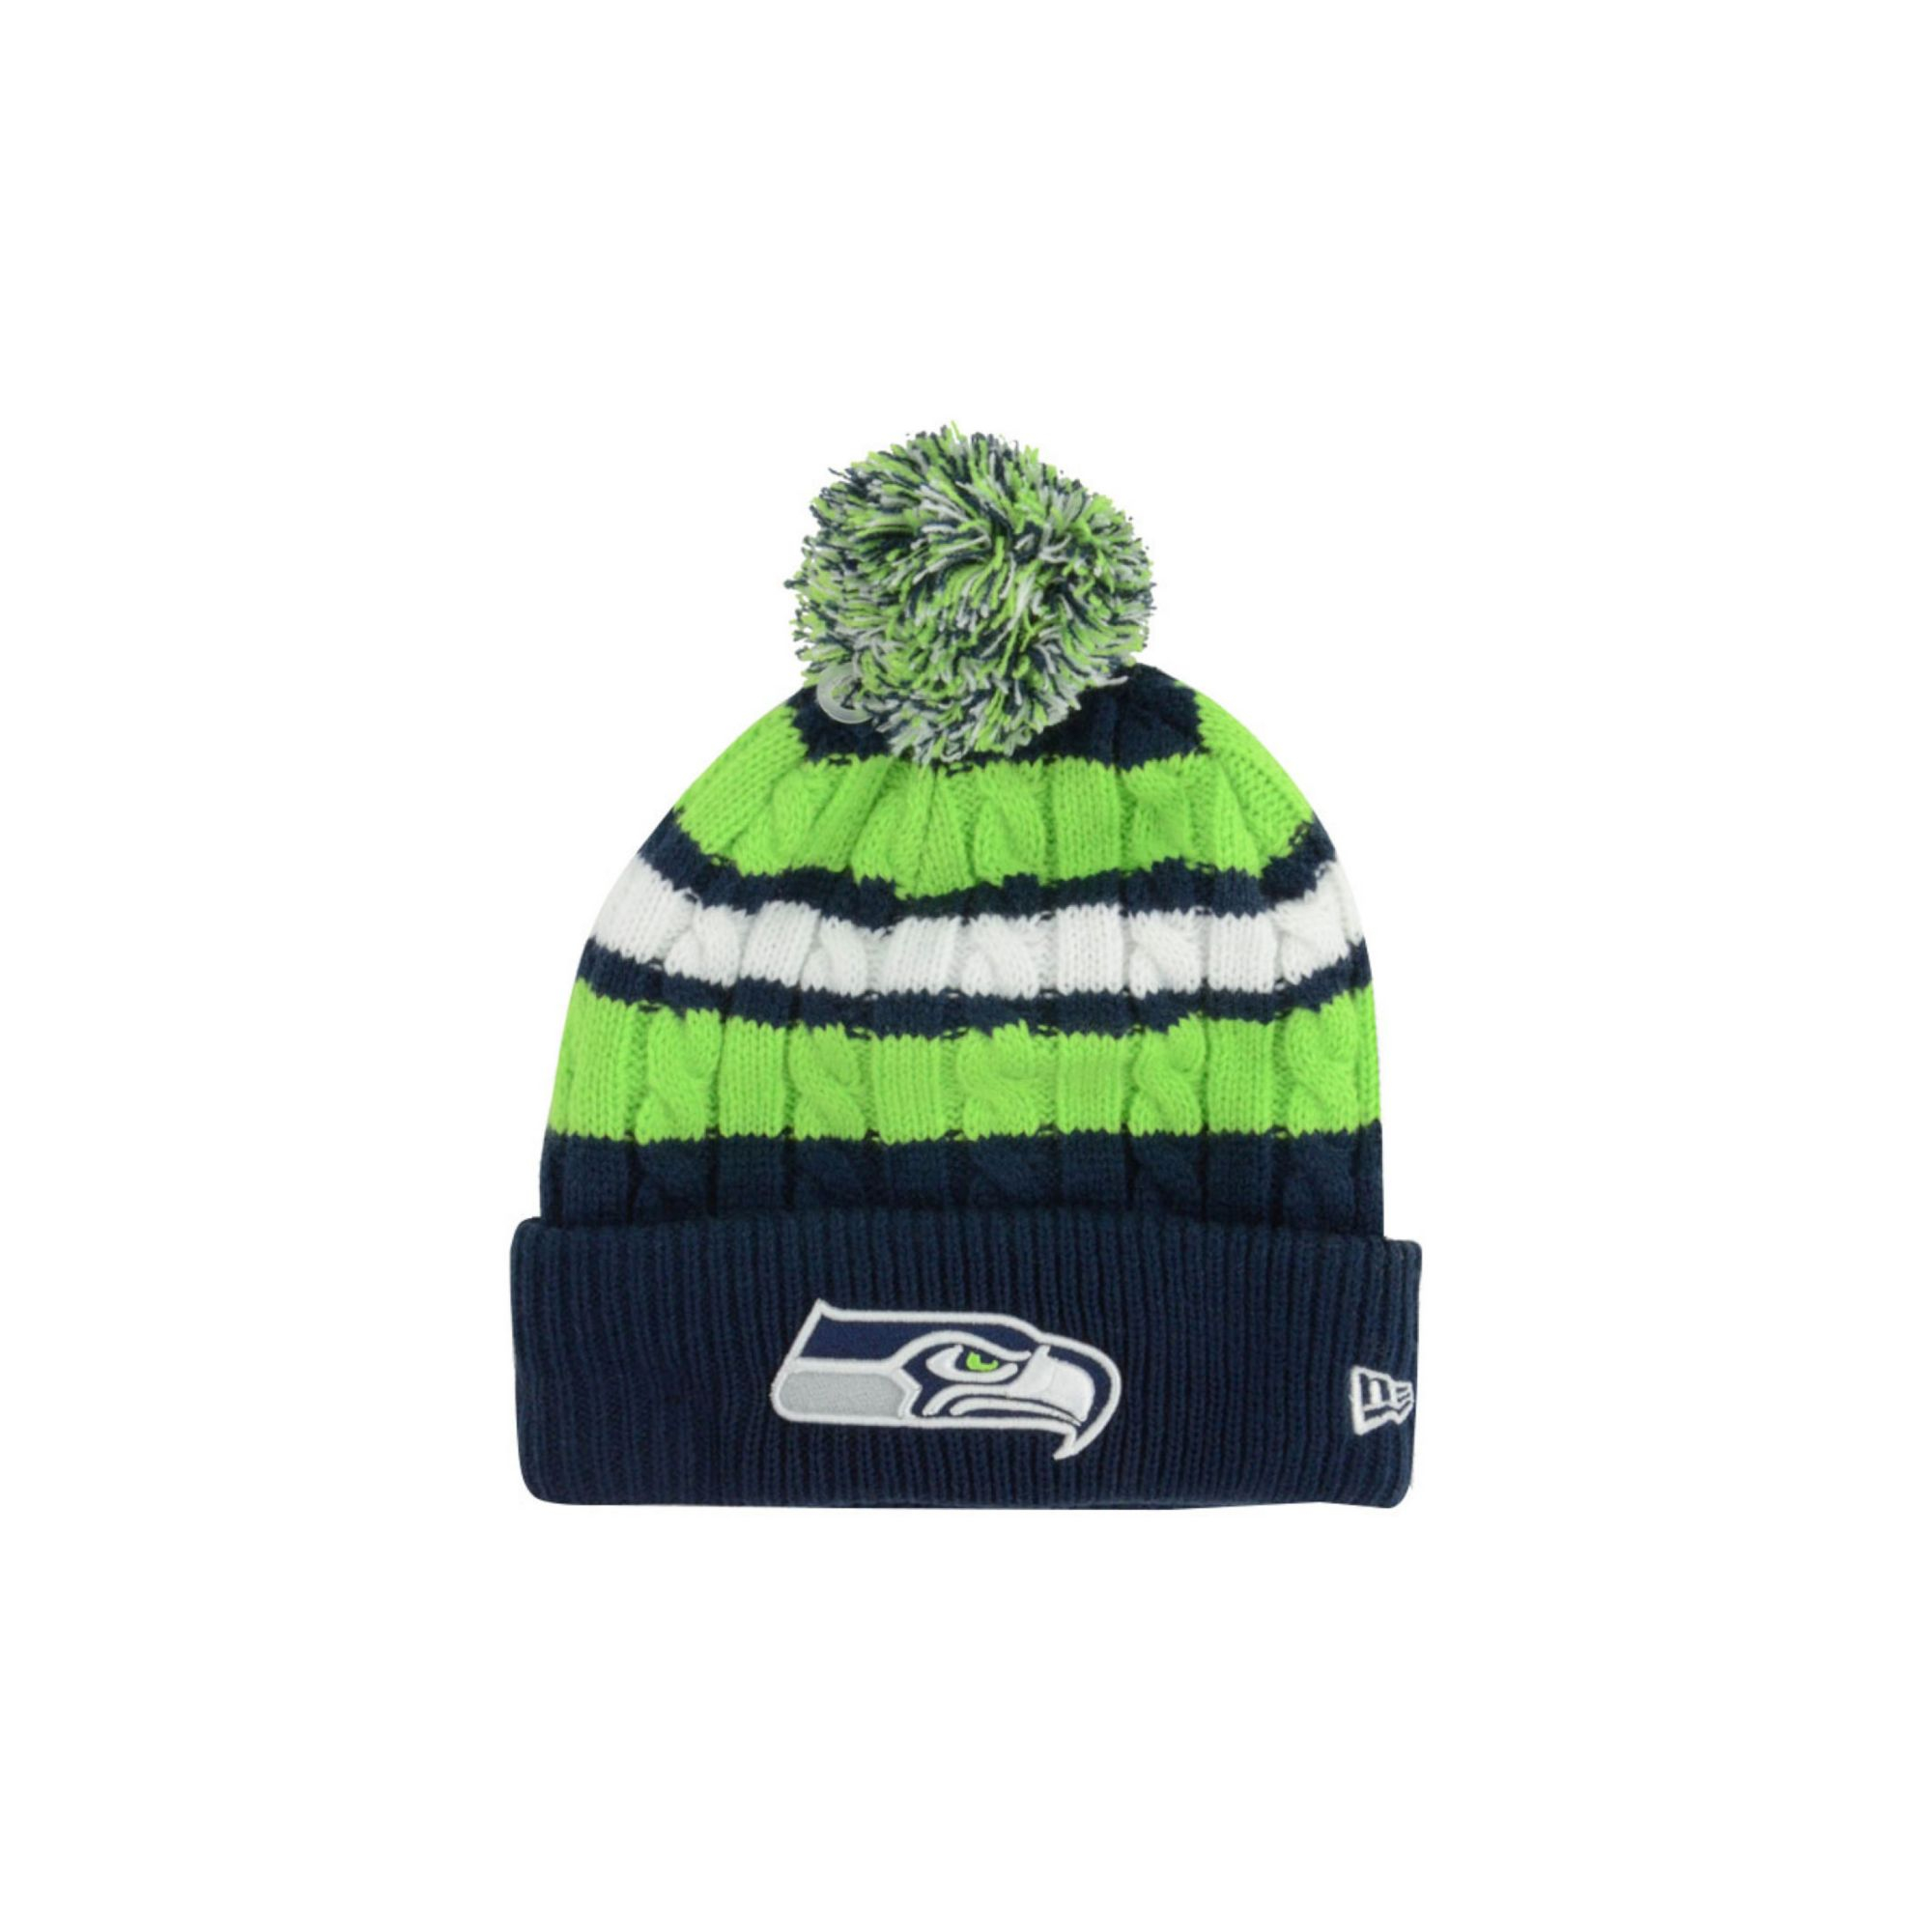 ... purchase lyst ktz seattle seahawks cold weather knit hat in green for  men d3f81 f5630 839710080129